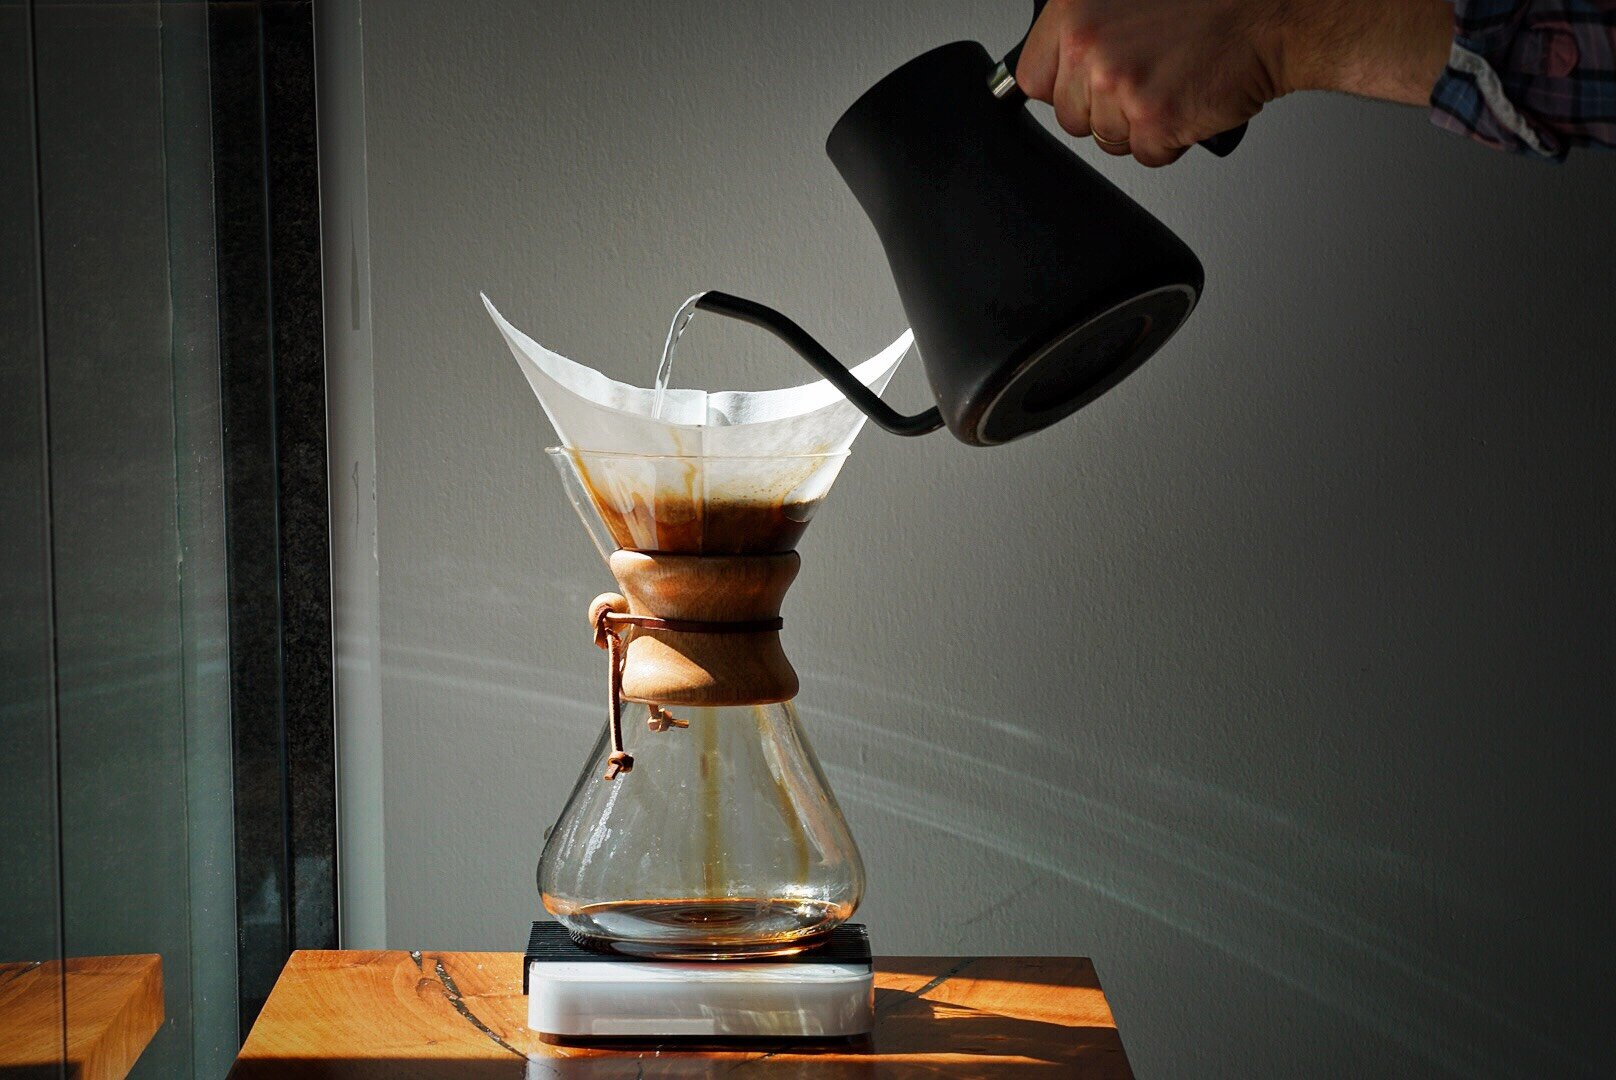 Brewing a 10 Cup Chemex with a Stagg Kettle and Acaia Pearl Scale